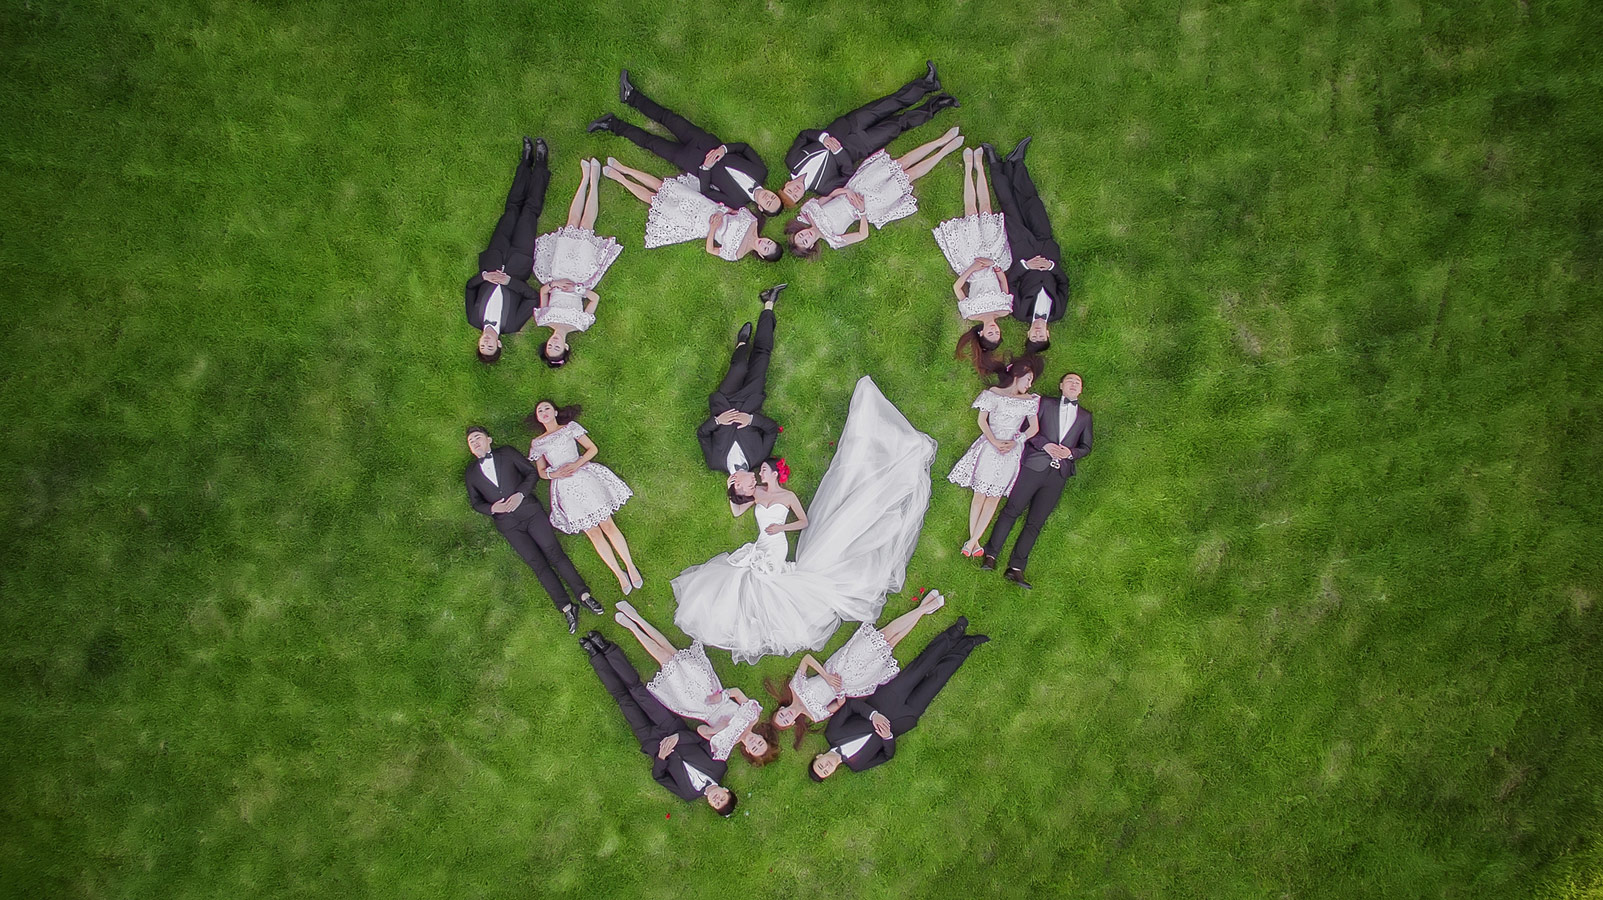 Lei Liu, First Place : Wedding Division - Bridal Party / Family and Friends, 2017 WPPI First Half Competition